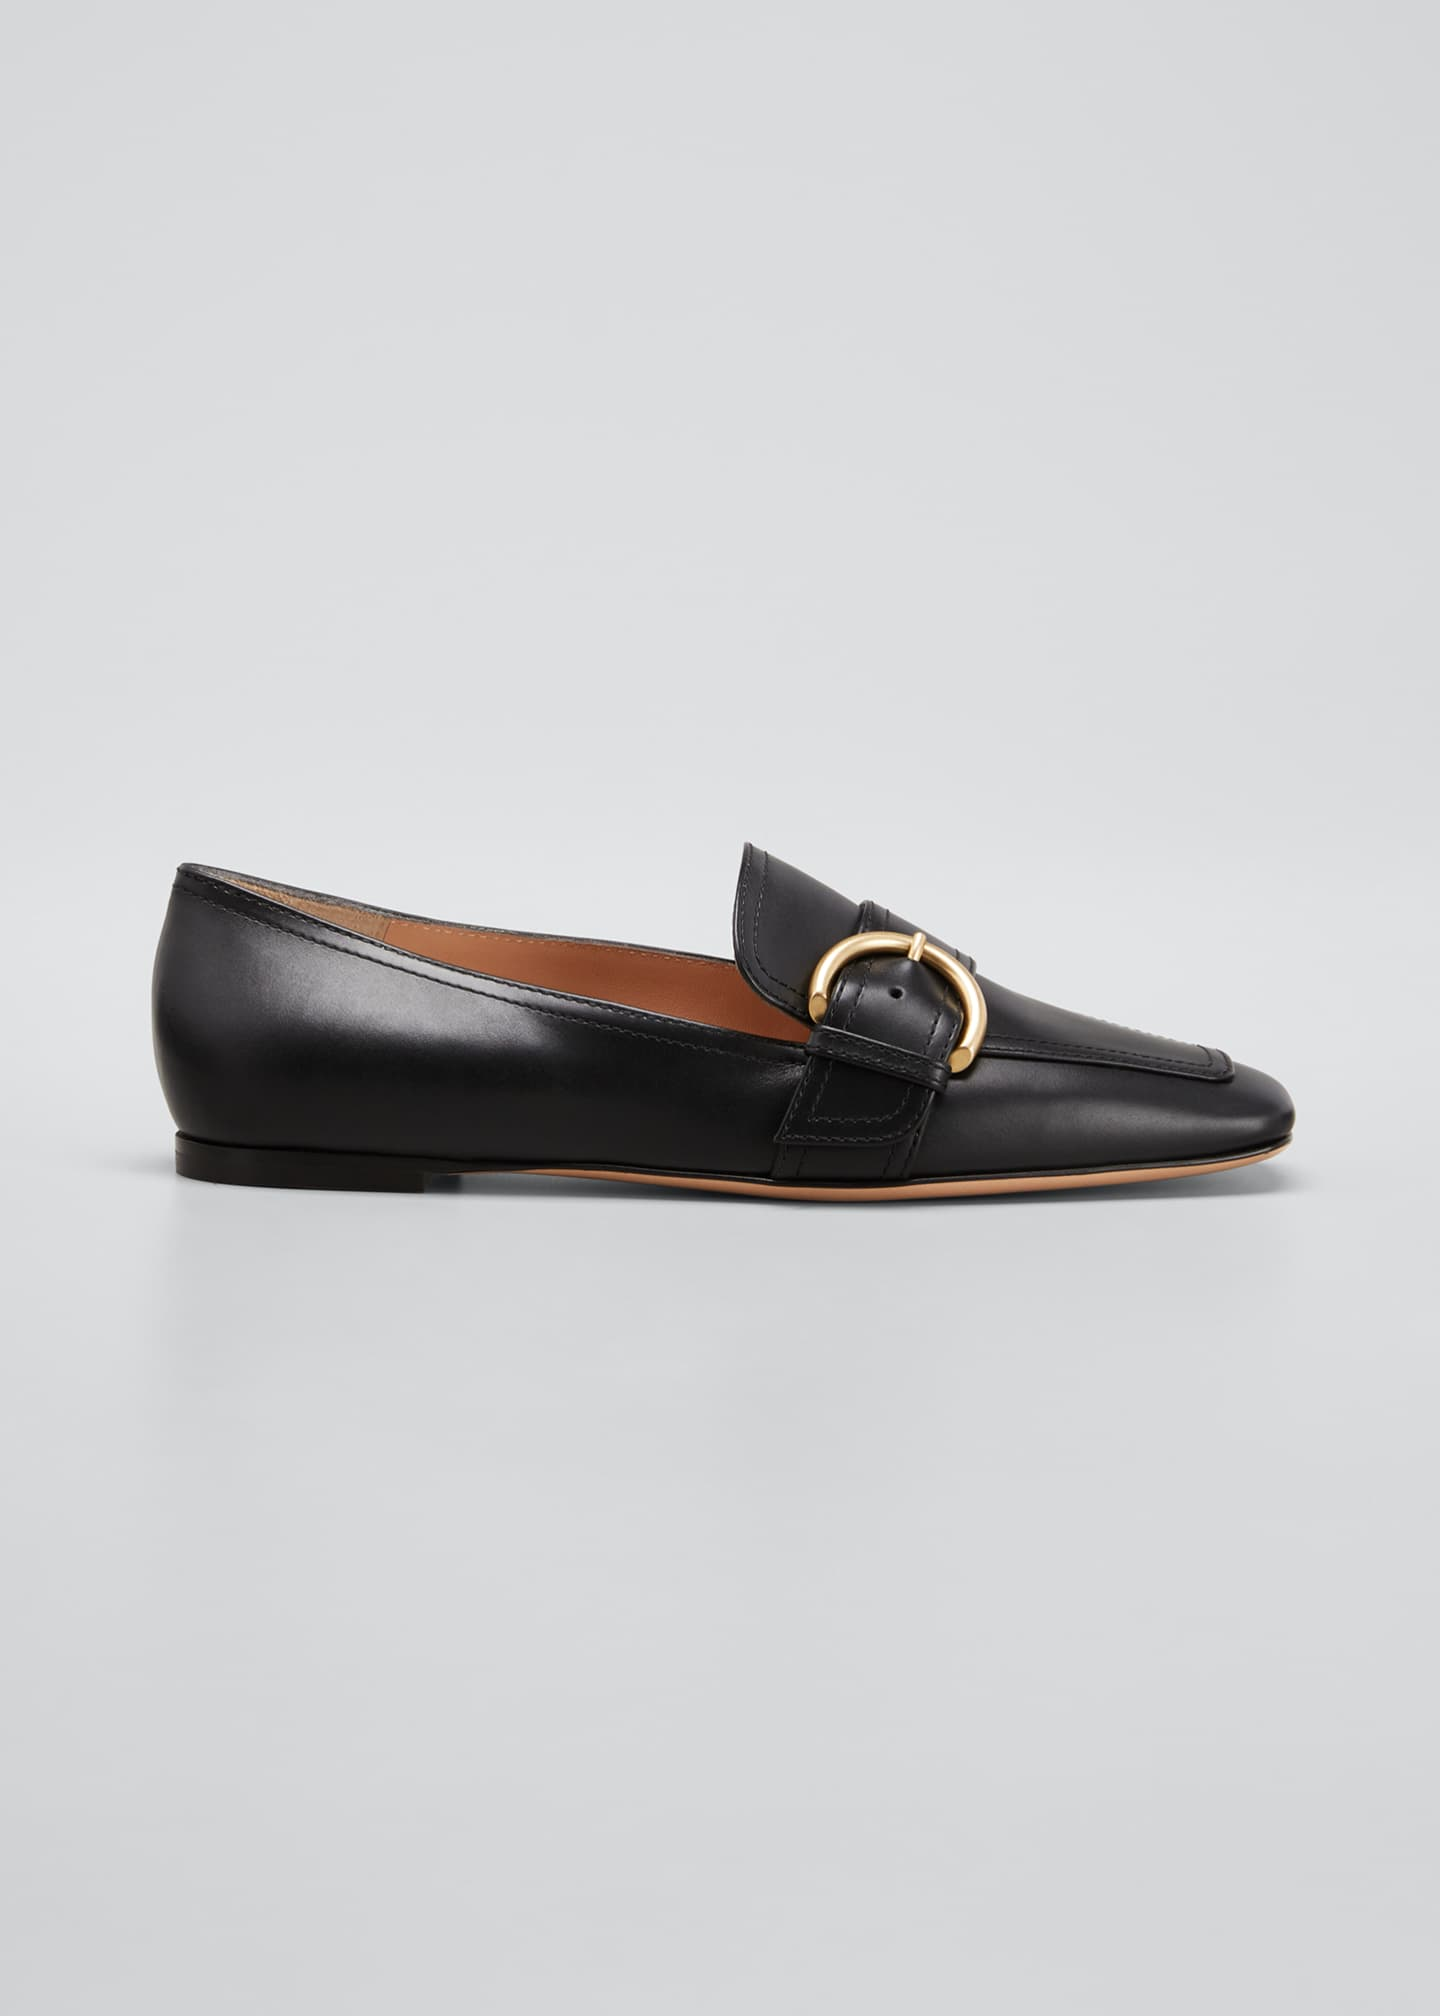 Image 1 of 5: 5mm Flat Square-Toe Leather Loafers